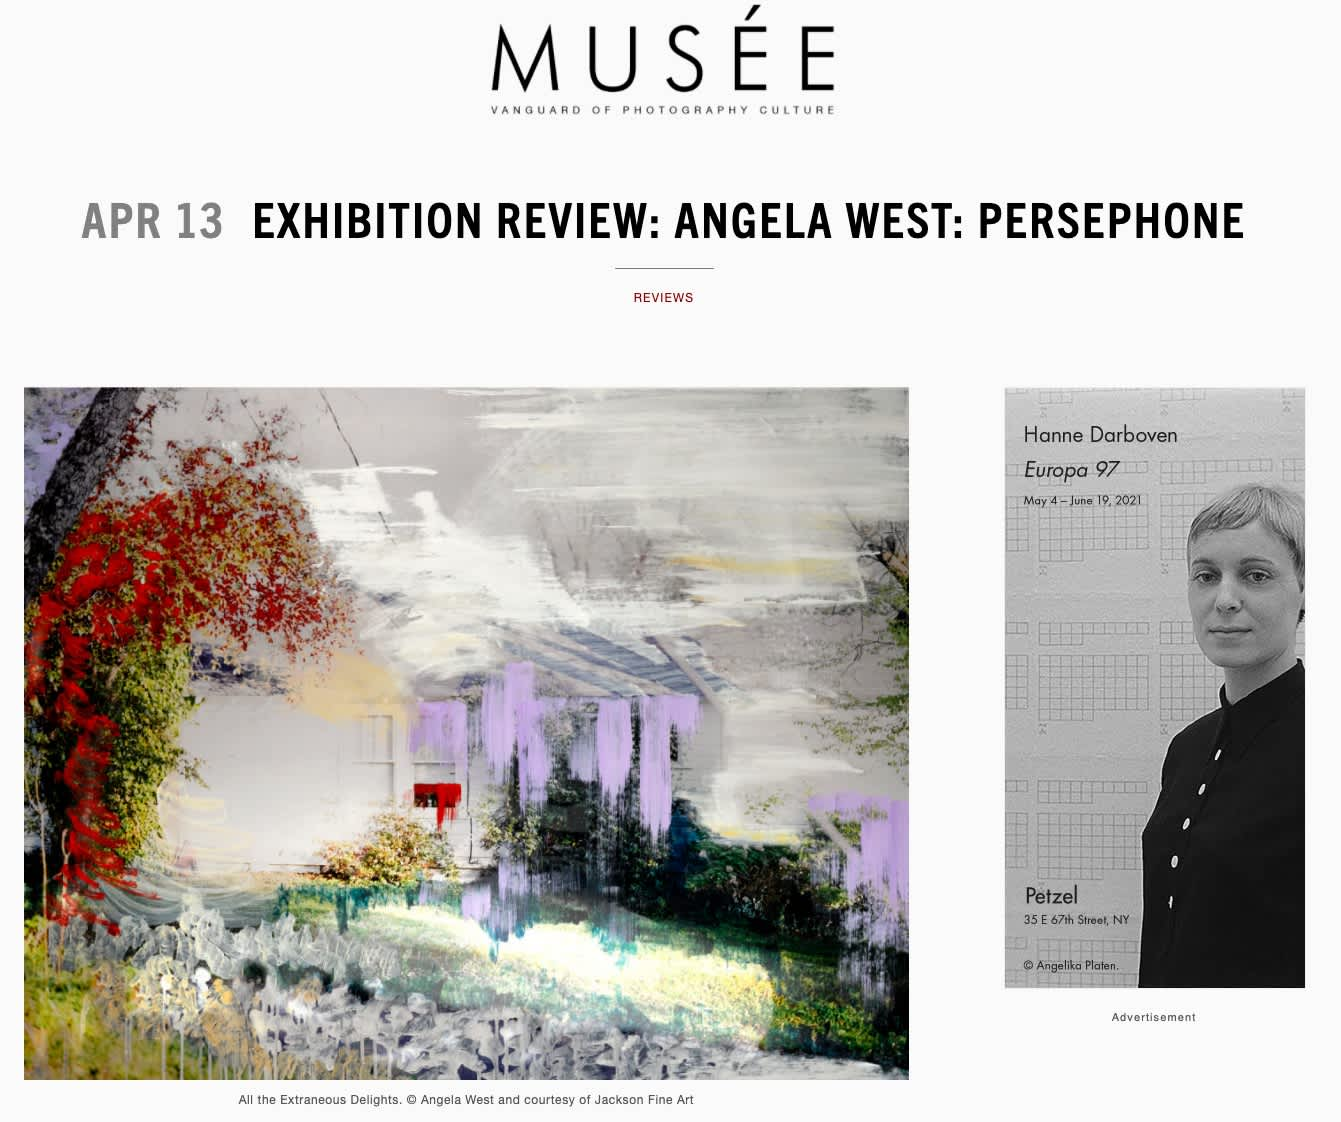 Exhibition Review: Angela West: Persephone